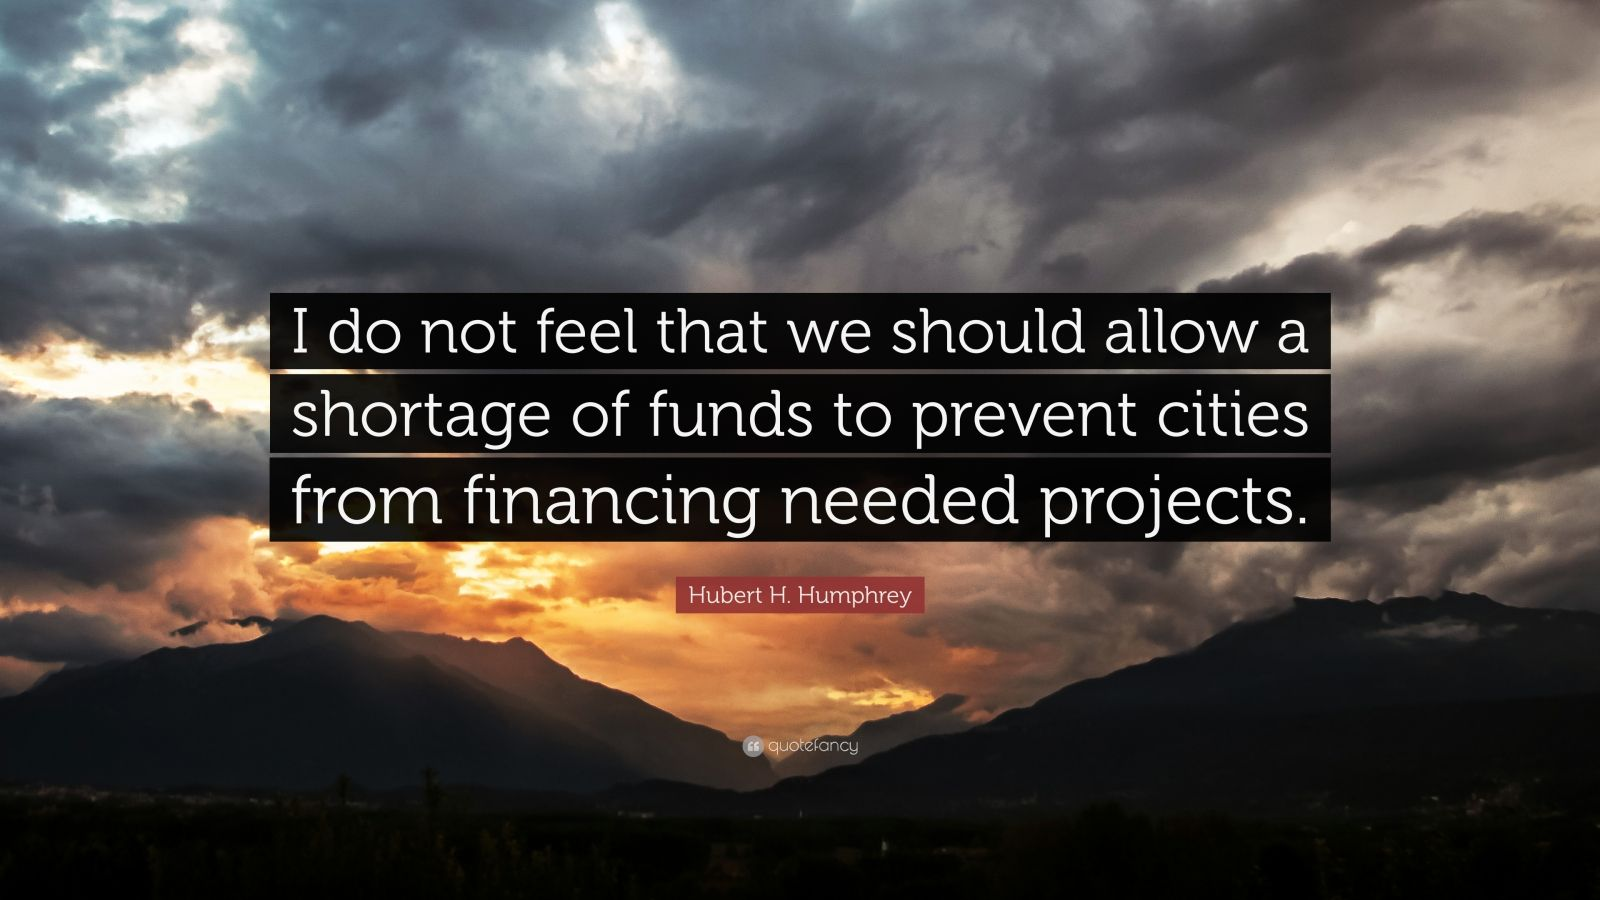 """Hubert H. Humphrey Quote: """"I do not feel that we should allow a shortage of funds to prevent cities from financing needed projects."""""""